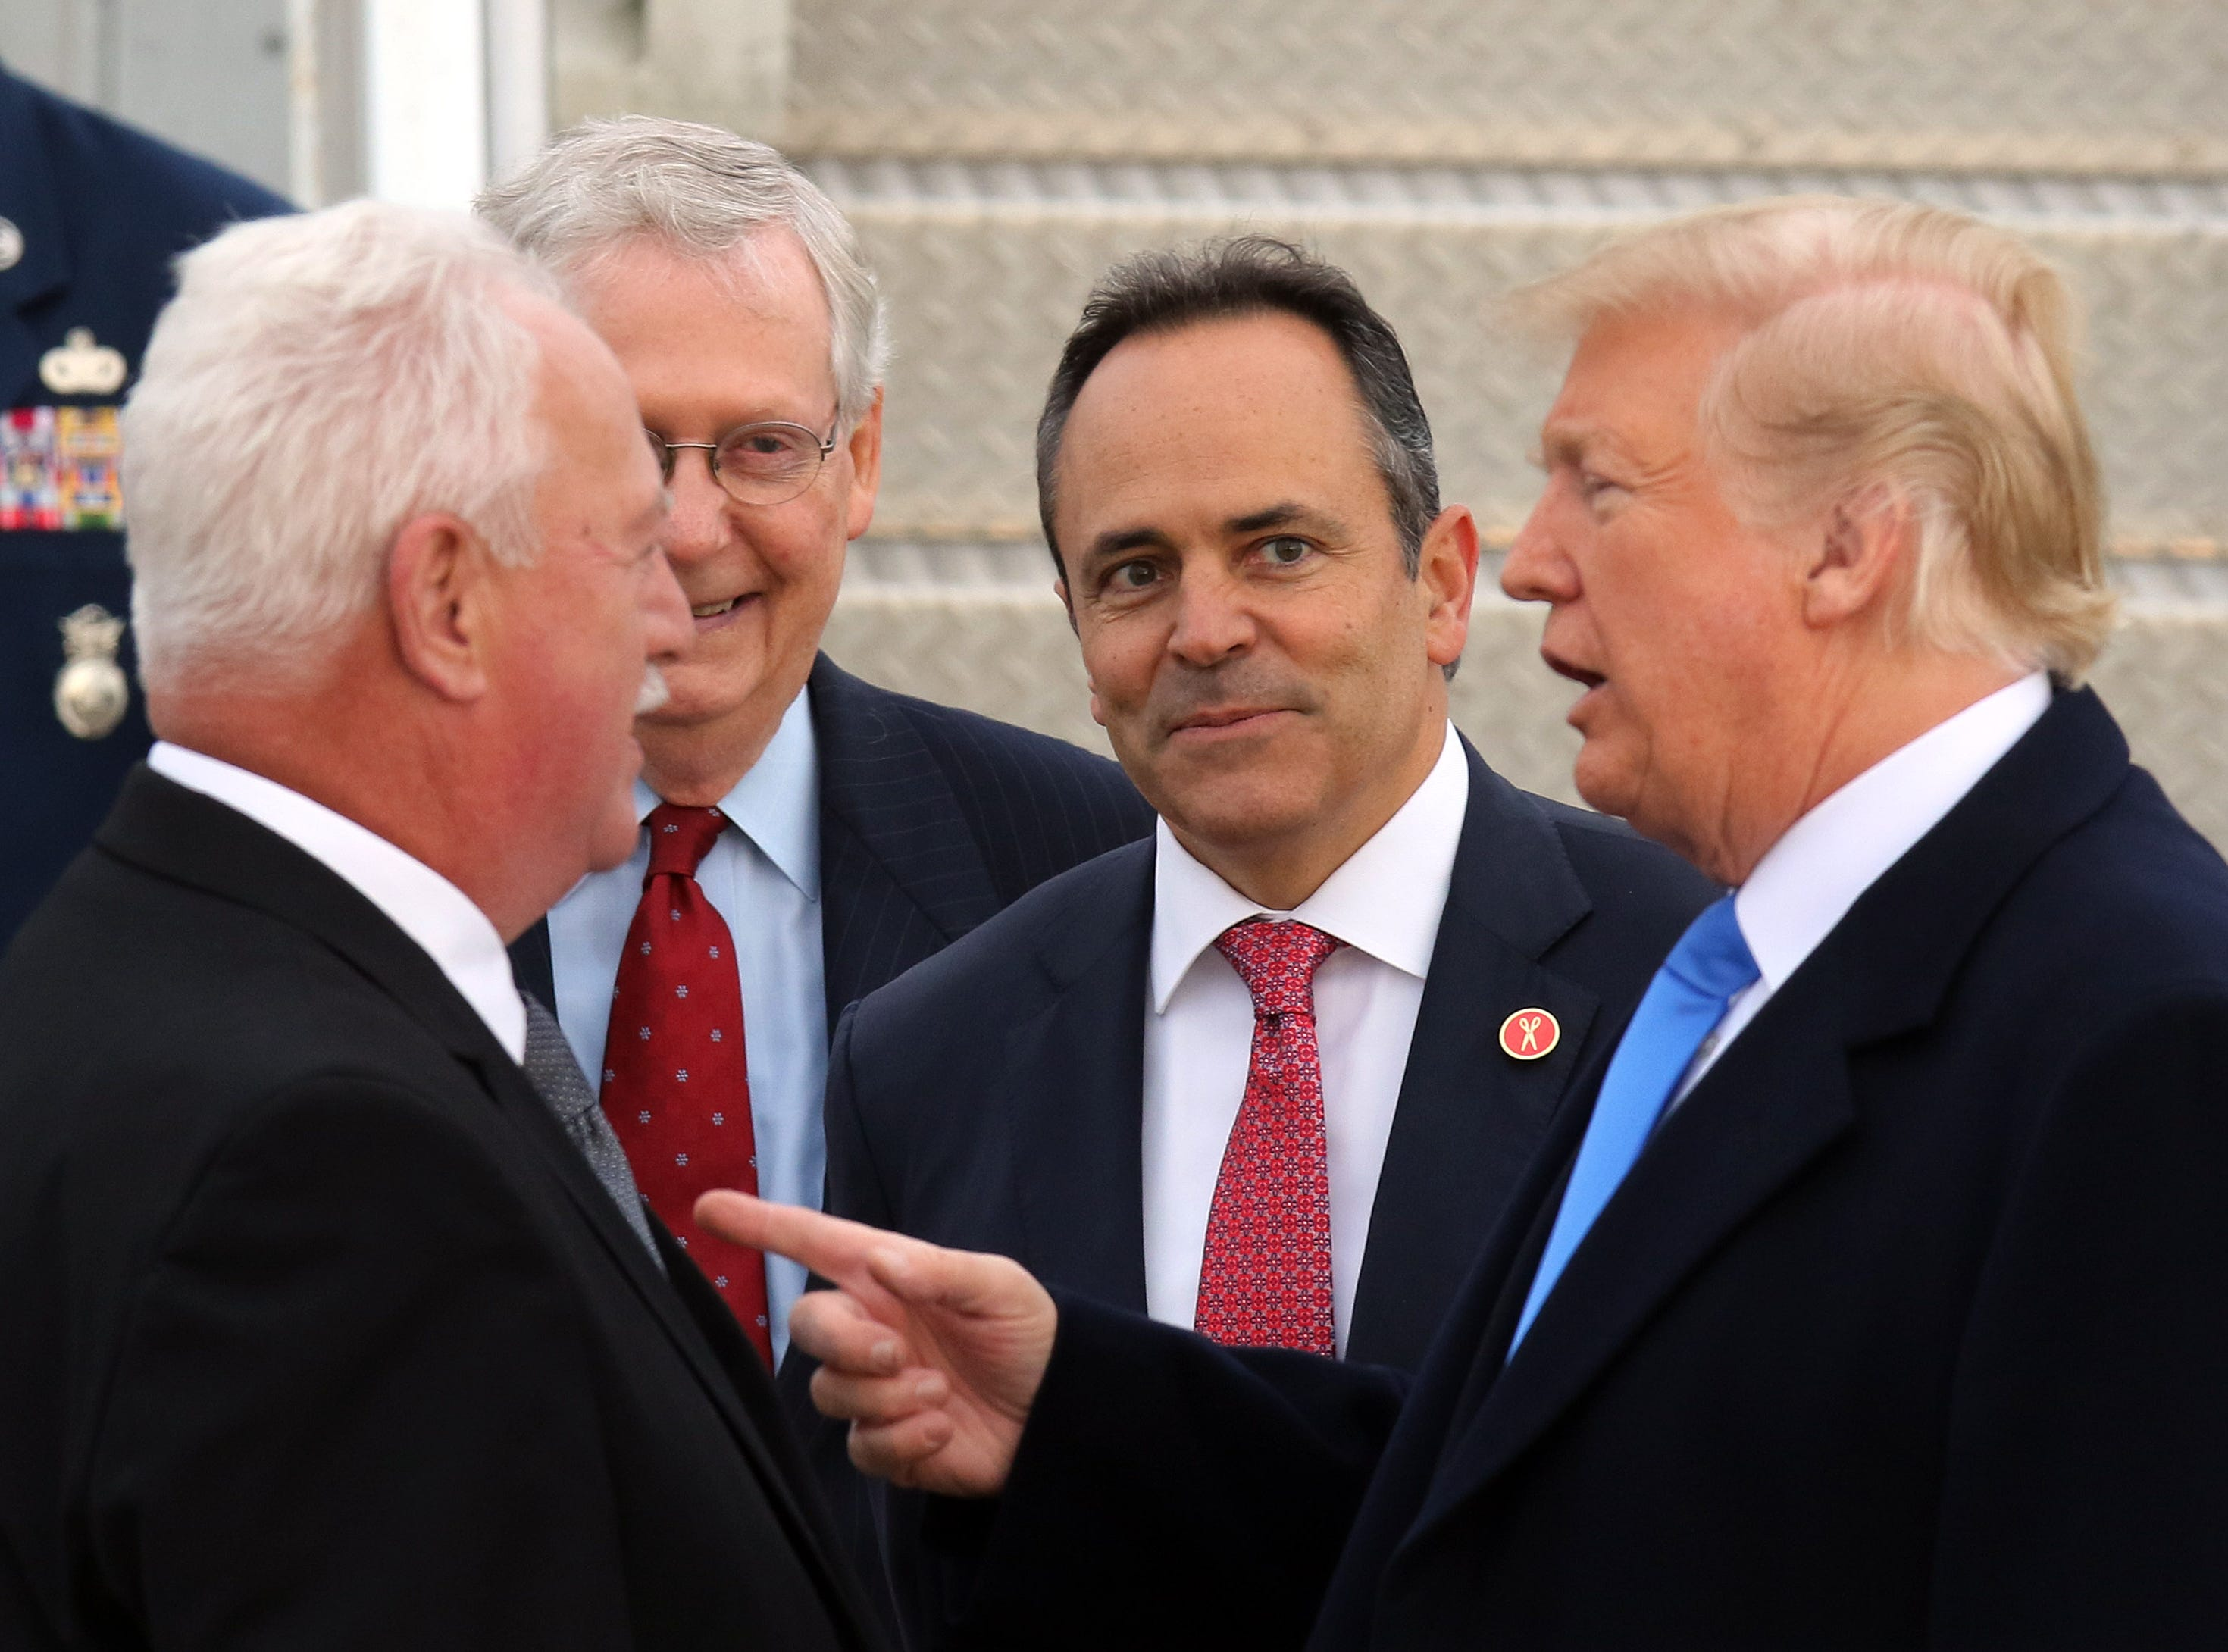 Sen. Mitch McConnell and Gov. Bevin, middle, look on as President Trump, right, greets an individual near Air Force One at Bluegrass Airport in Lexington, Oct. 13, 2018.